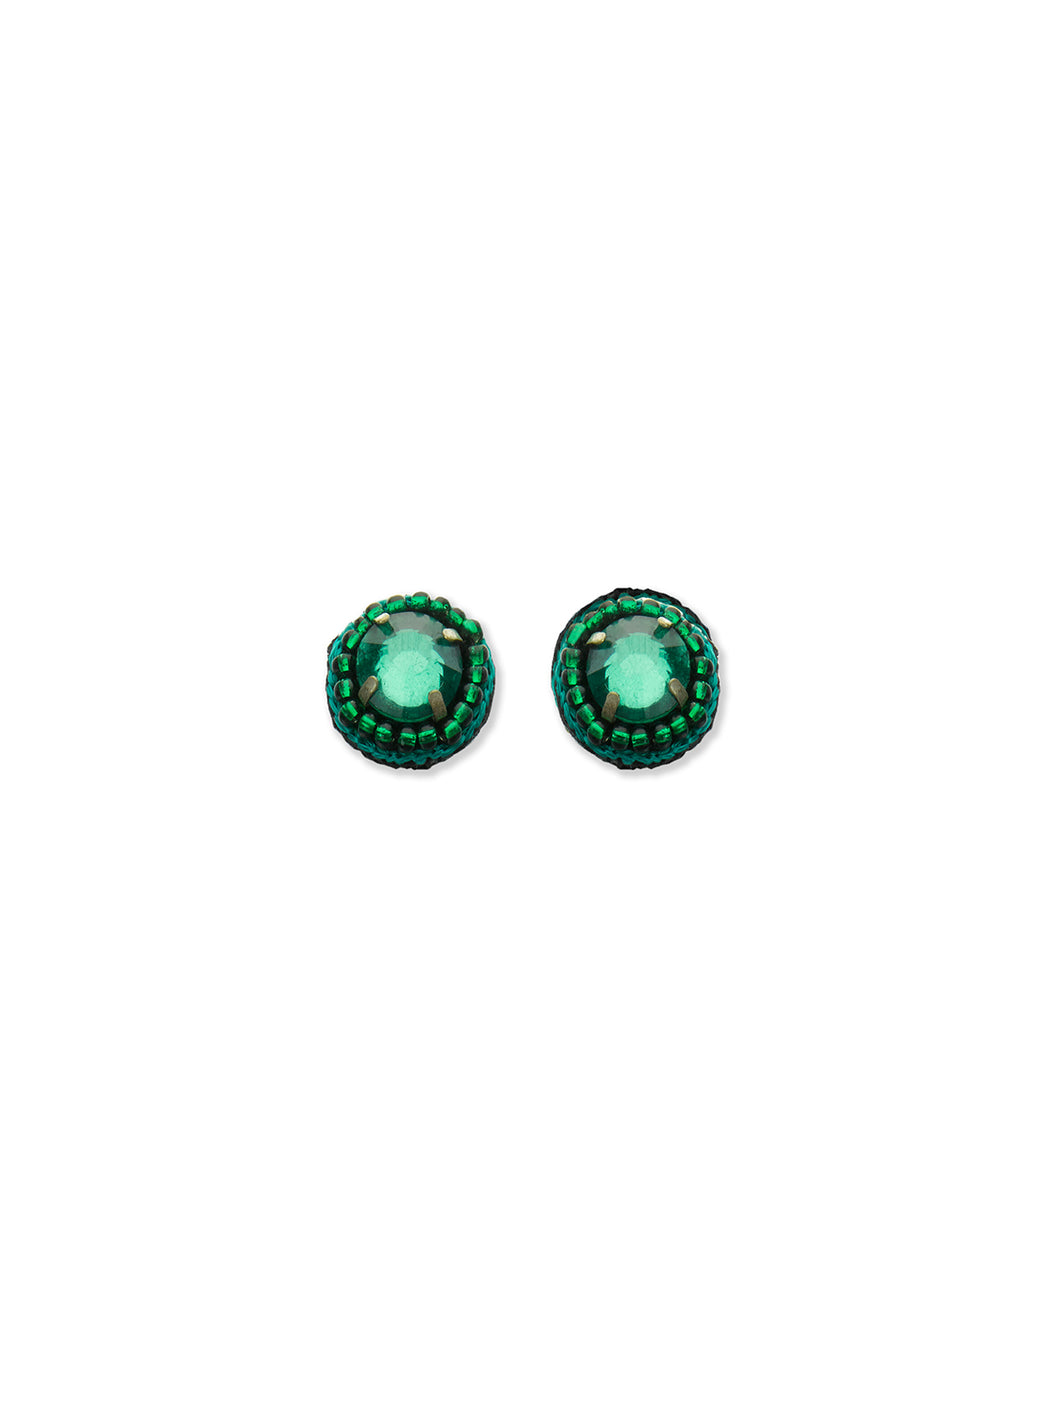 Emerald Circle Stud Earrings